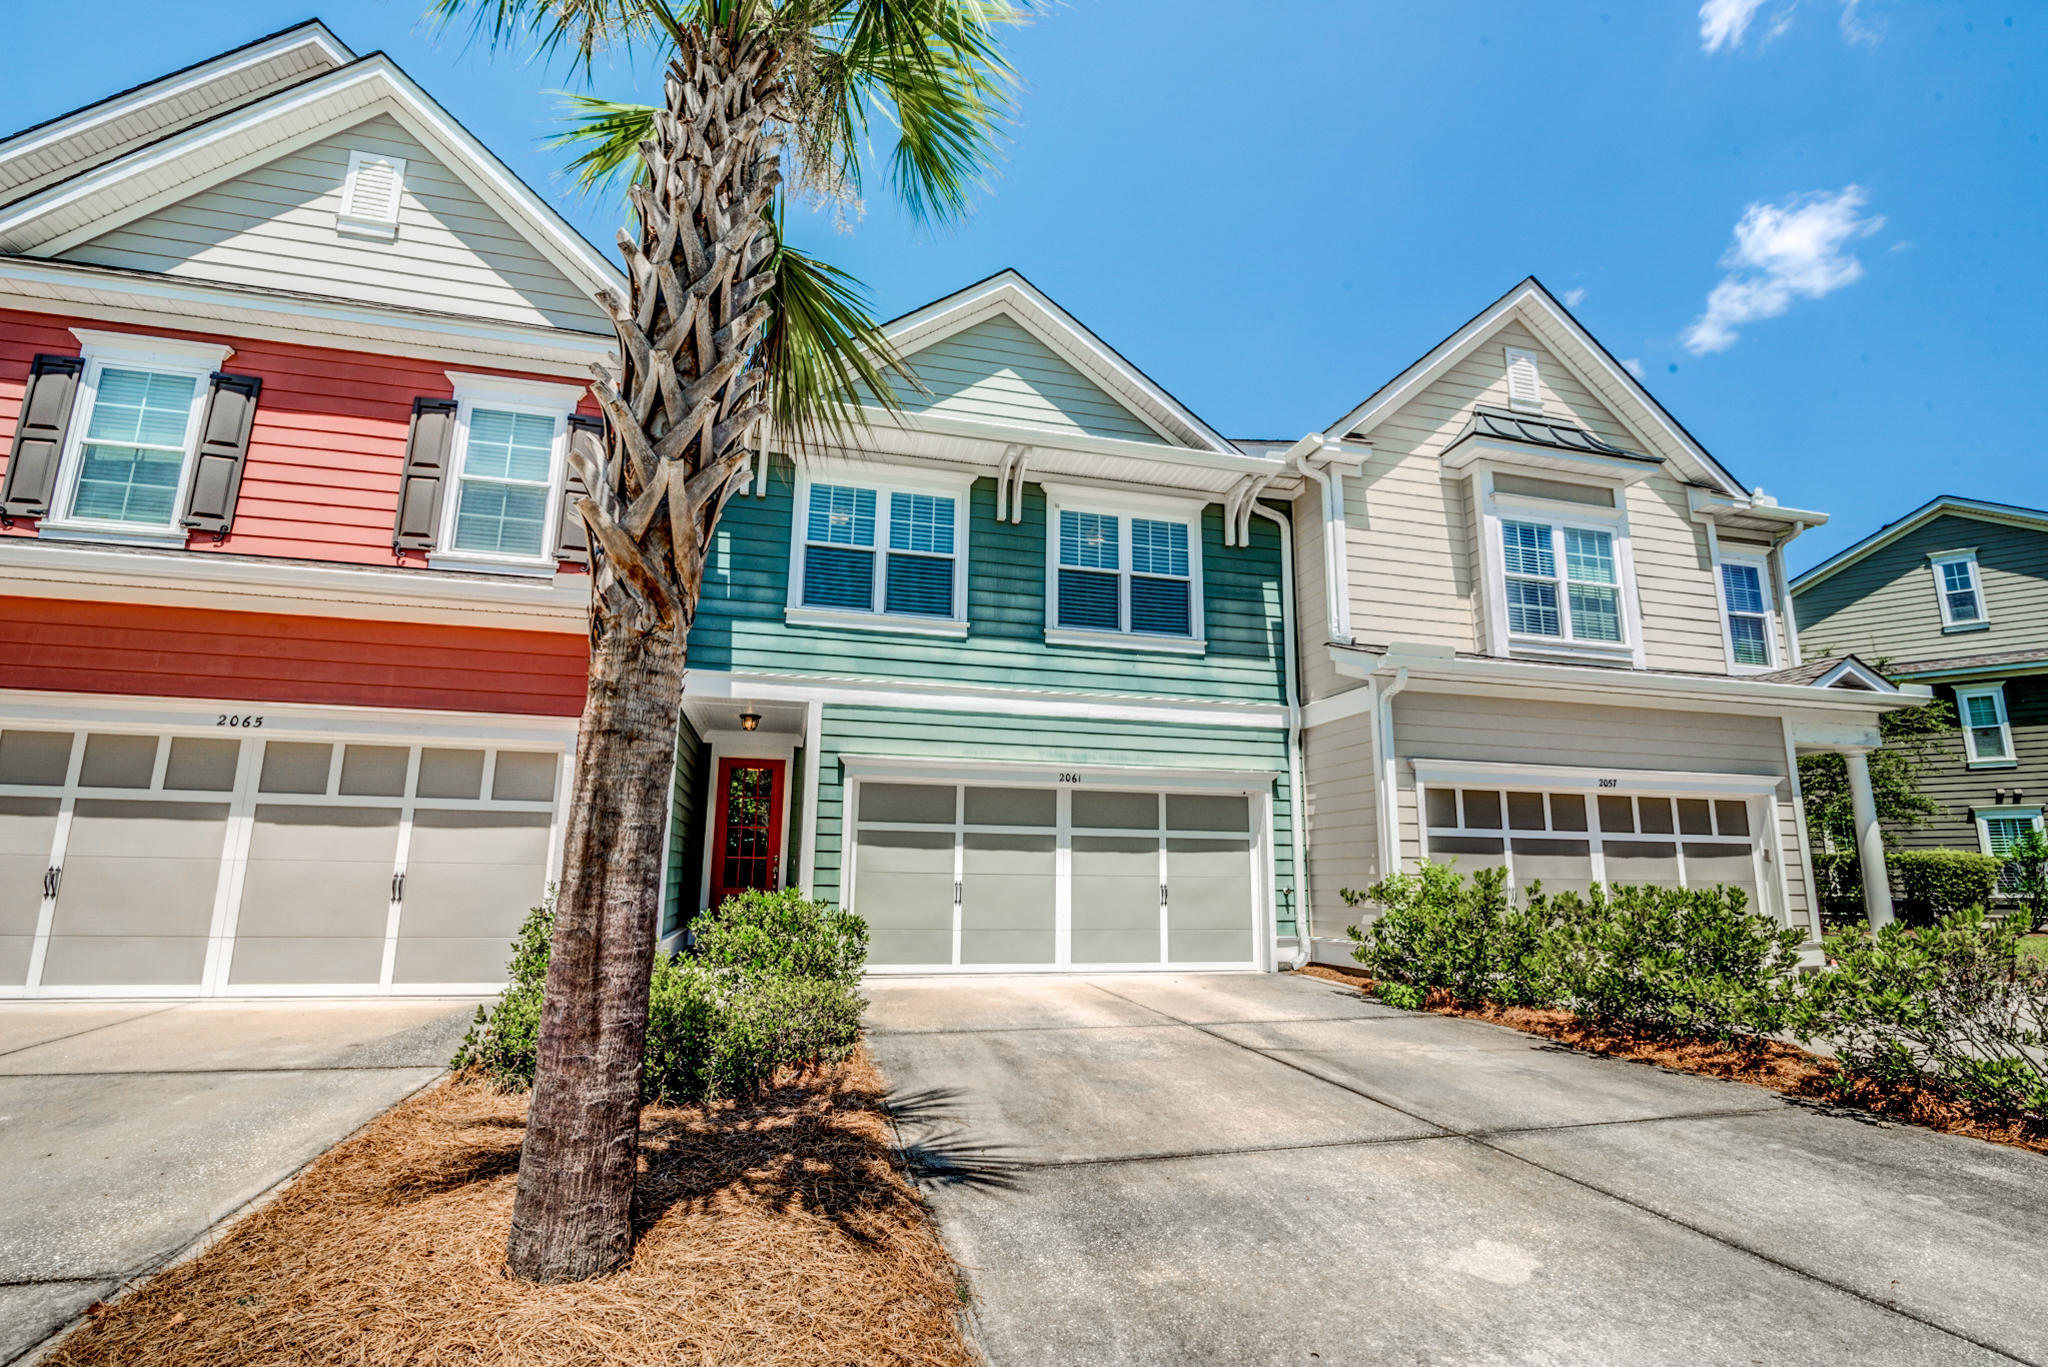 Dunes West Homes For Sale - 2061 Kings Gate, Mount Pleasant, SC - 19